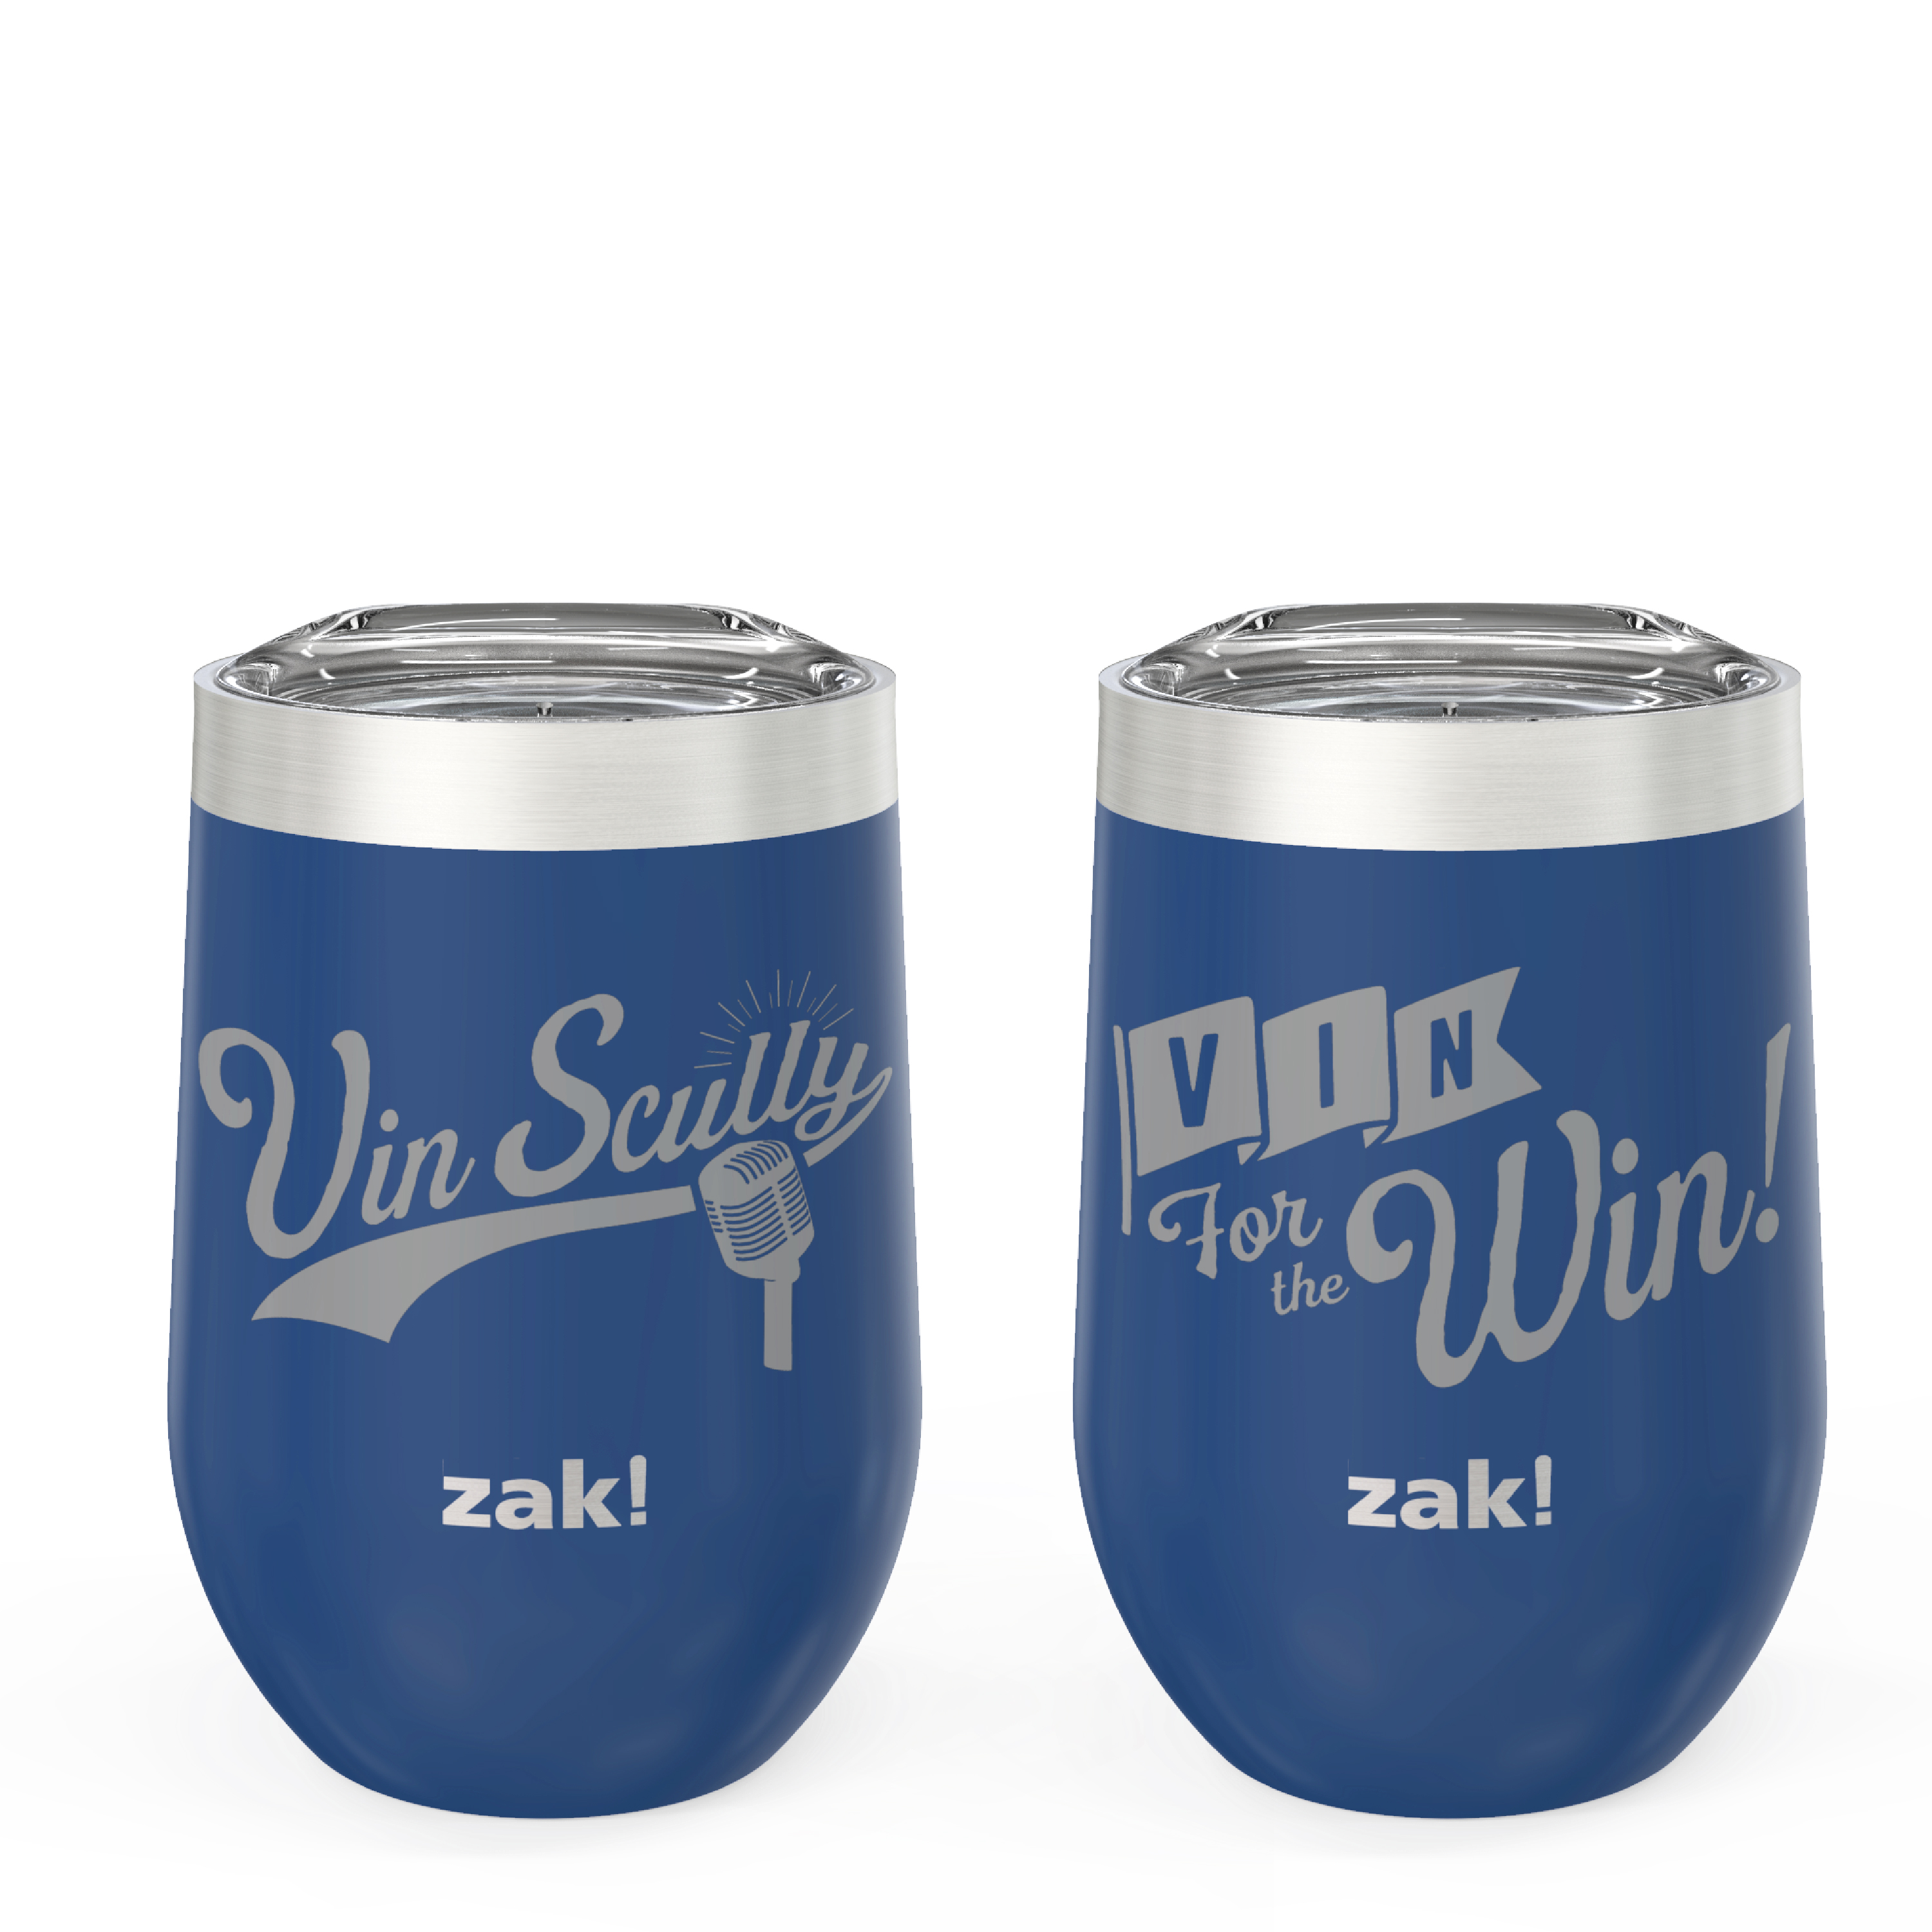 Zak Hydration 11.5 ounce Insulated Stainless Steel Tumbler, Vin Scully, 2-piece set slideshow image 1